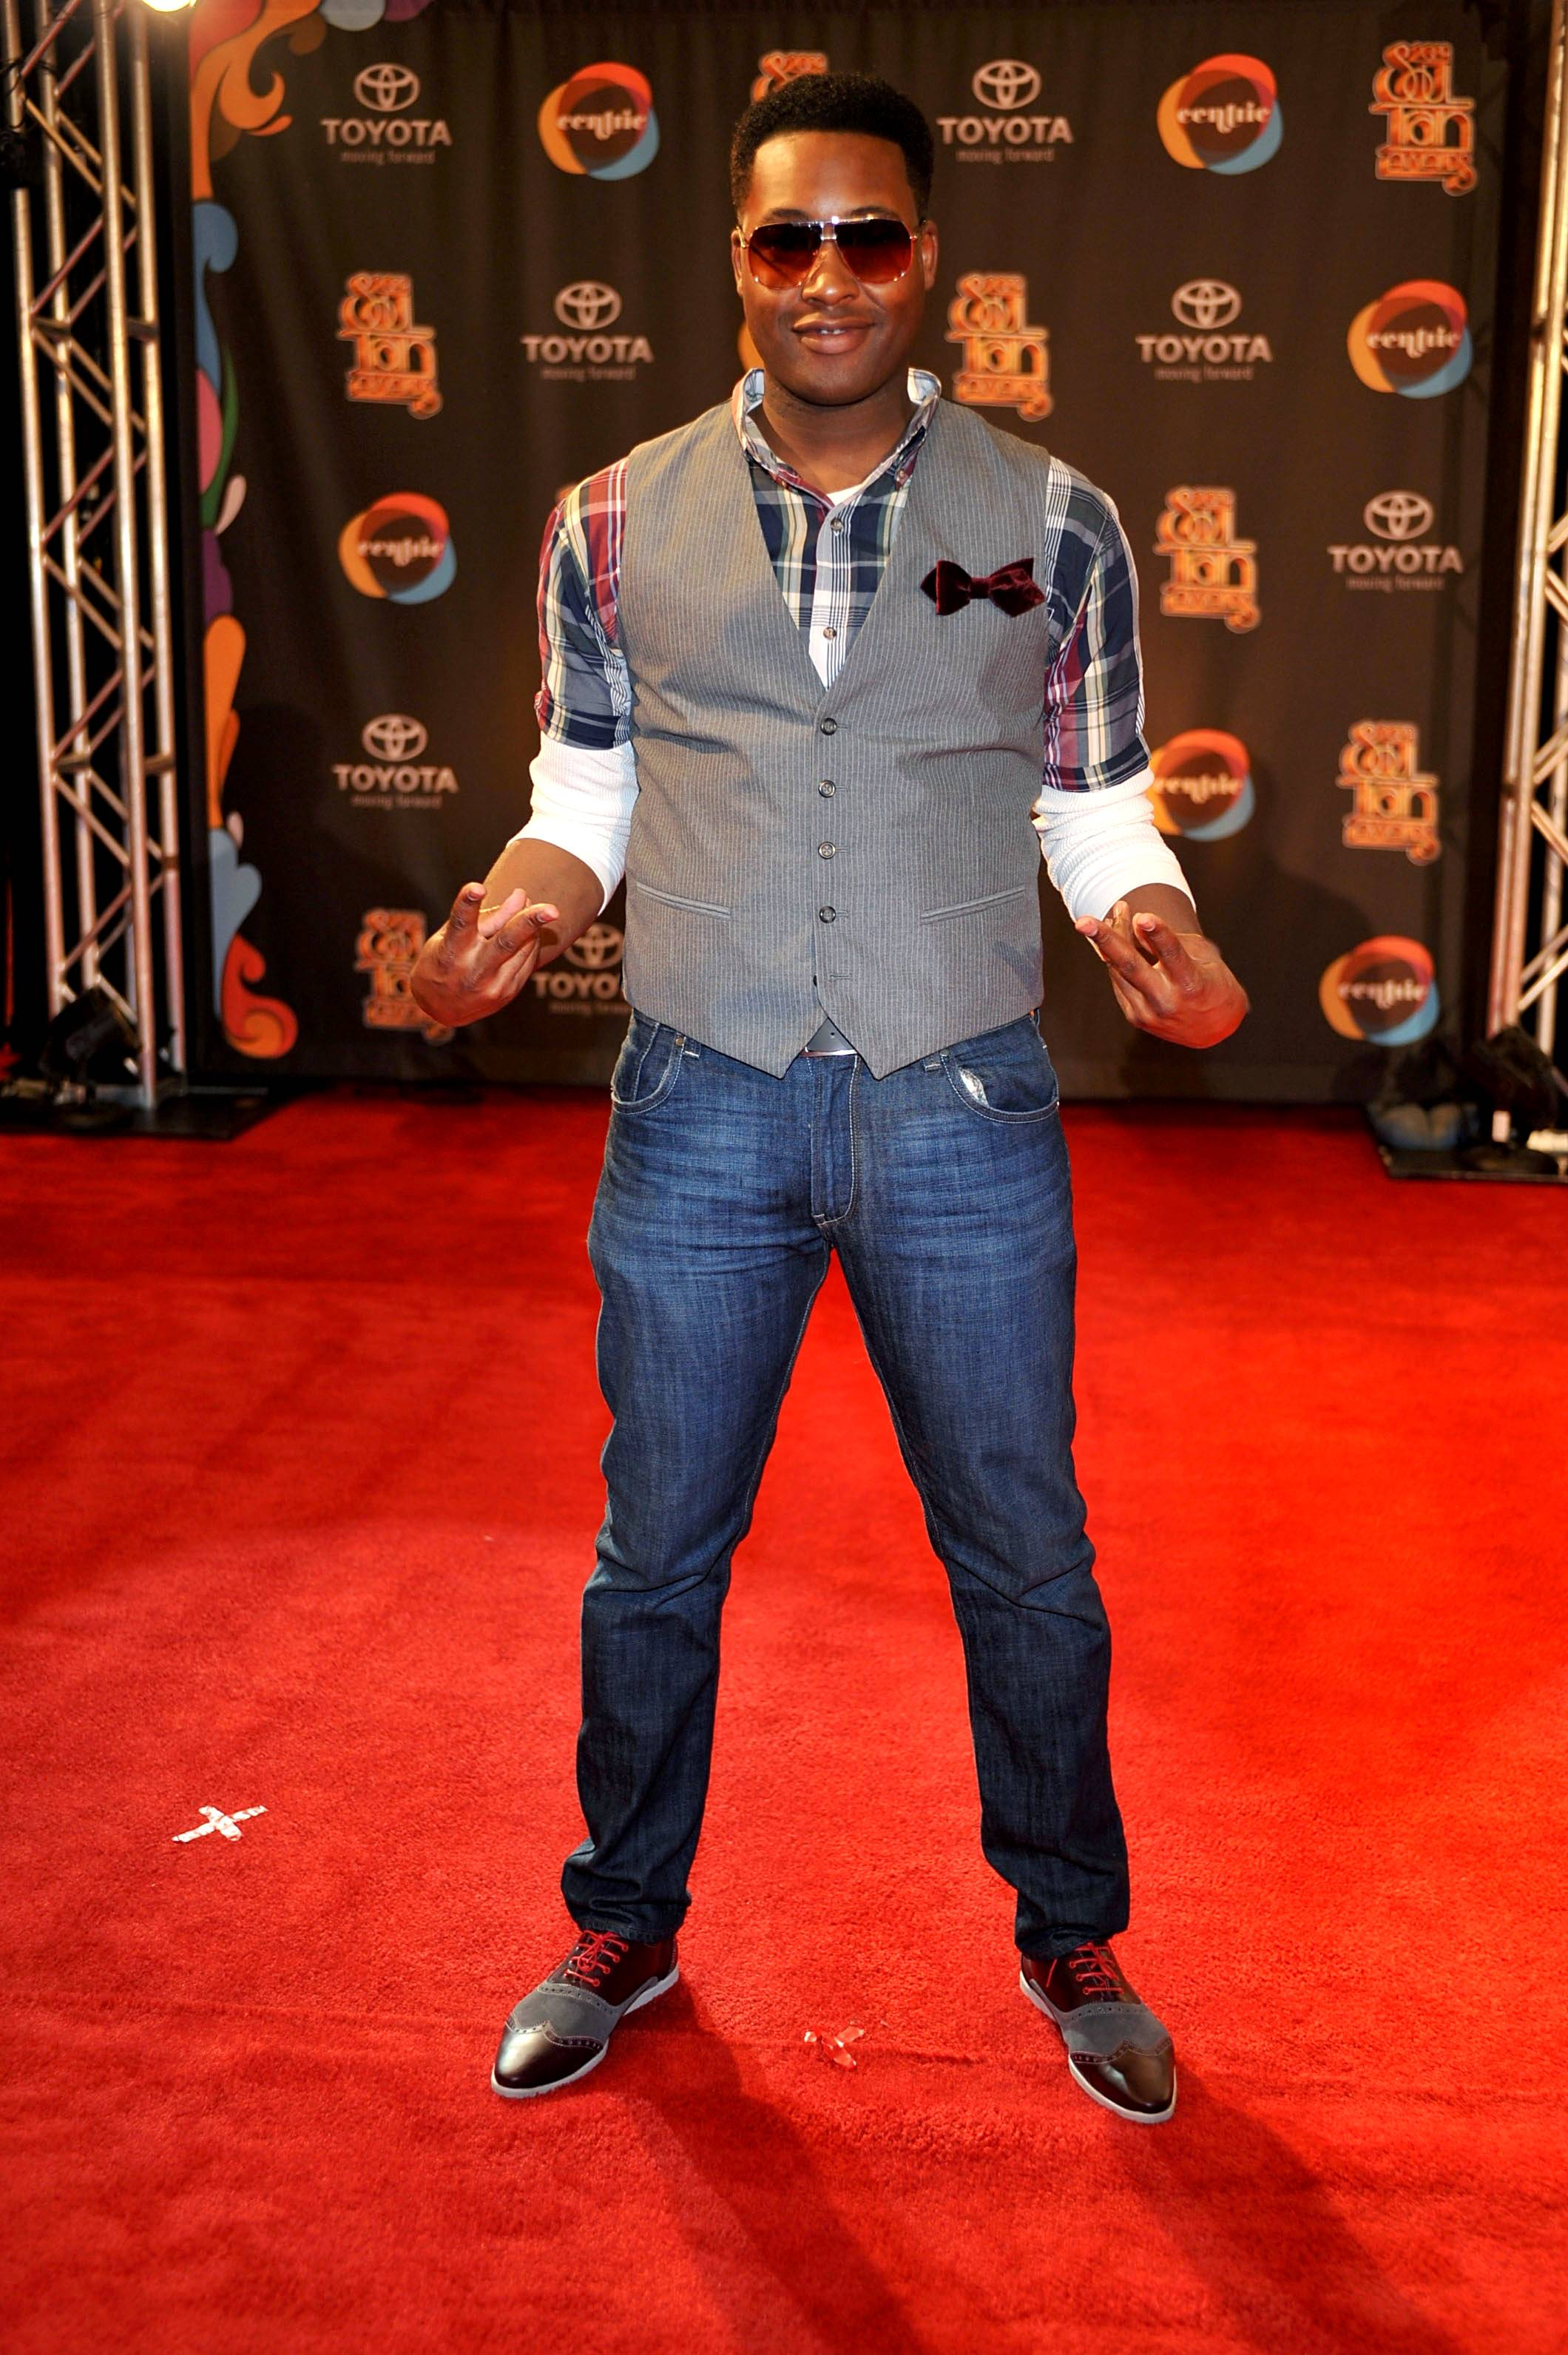 Mychael Knight - Born in Germany and raised in the States, Knight entered the fashion industry after studying in Atlanta, GA. He debut his self-titled line during BET's Rip the Runway in 2007.(Photo: Moses Robinson/PictureGroup)